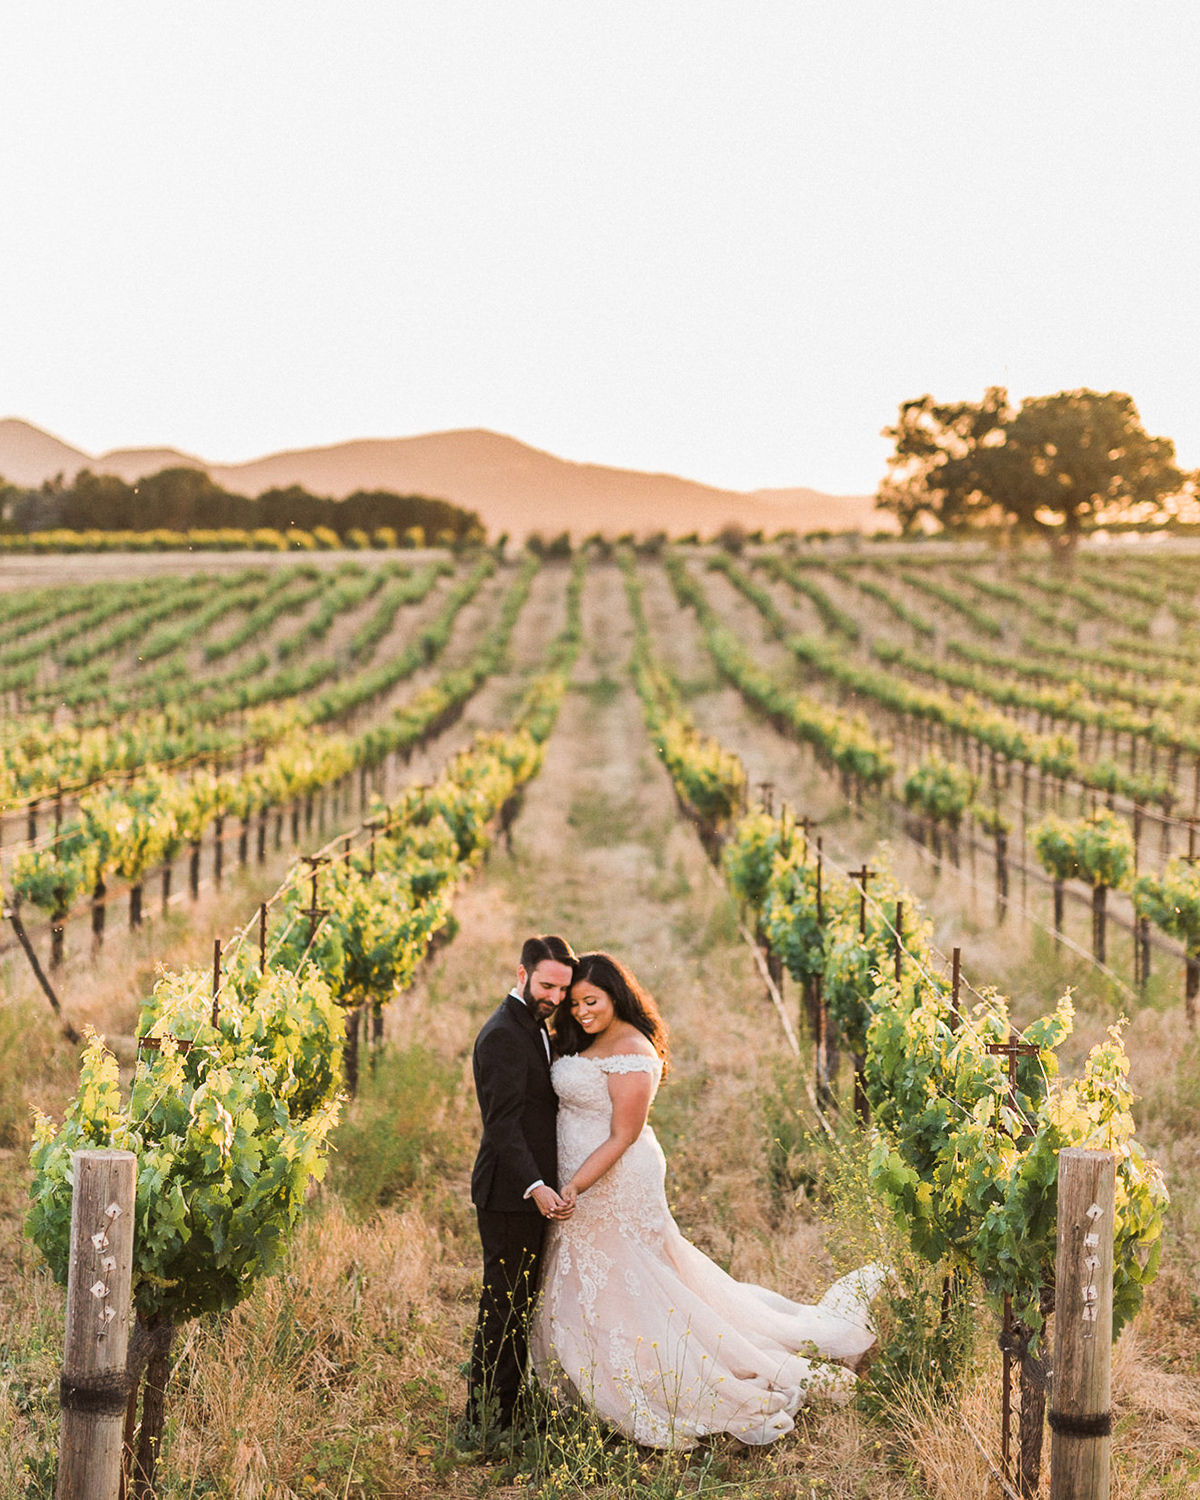 bride and groom standing in vineyard field smiling